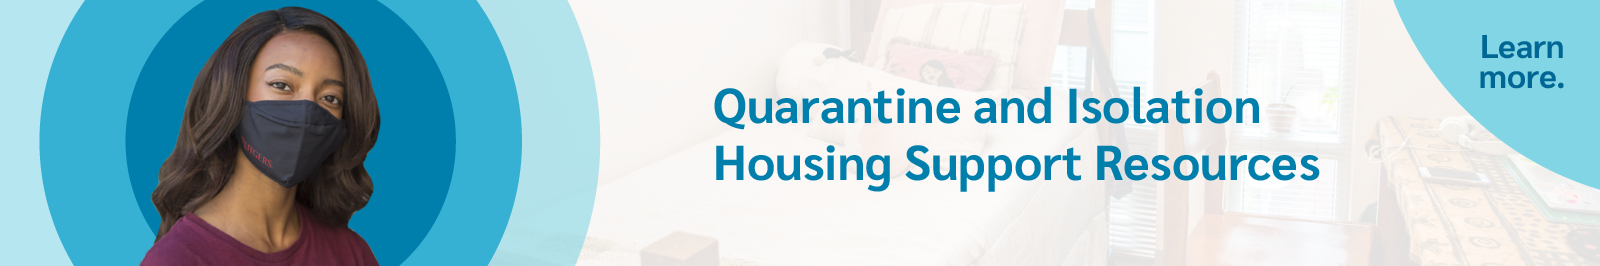 Quarantine and Isolation Housing Support Services